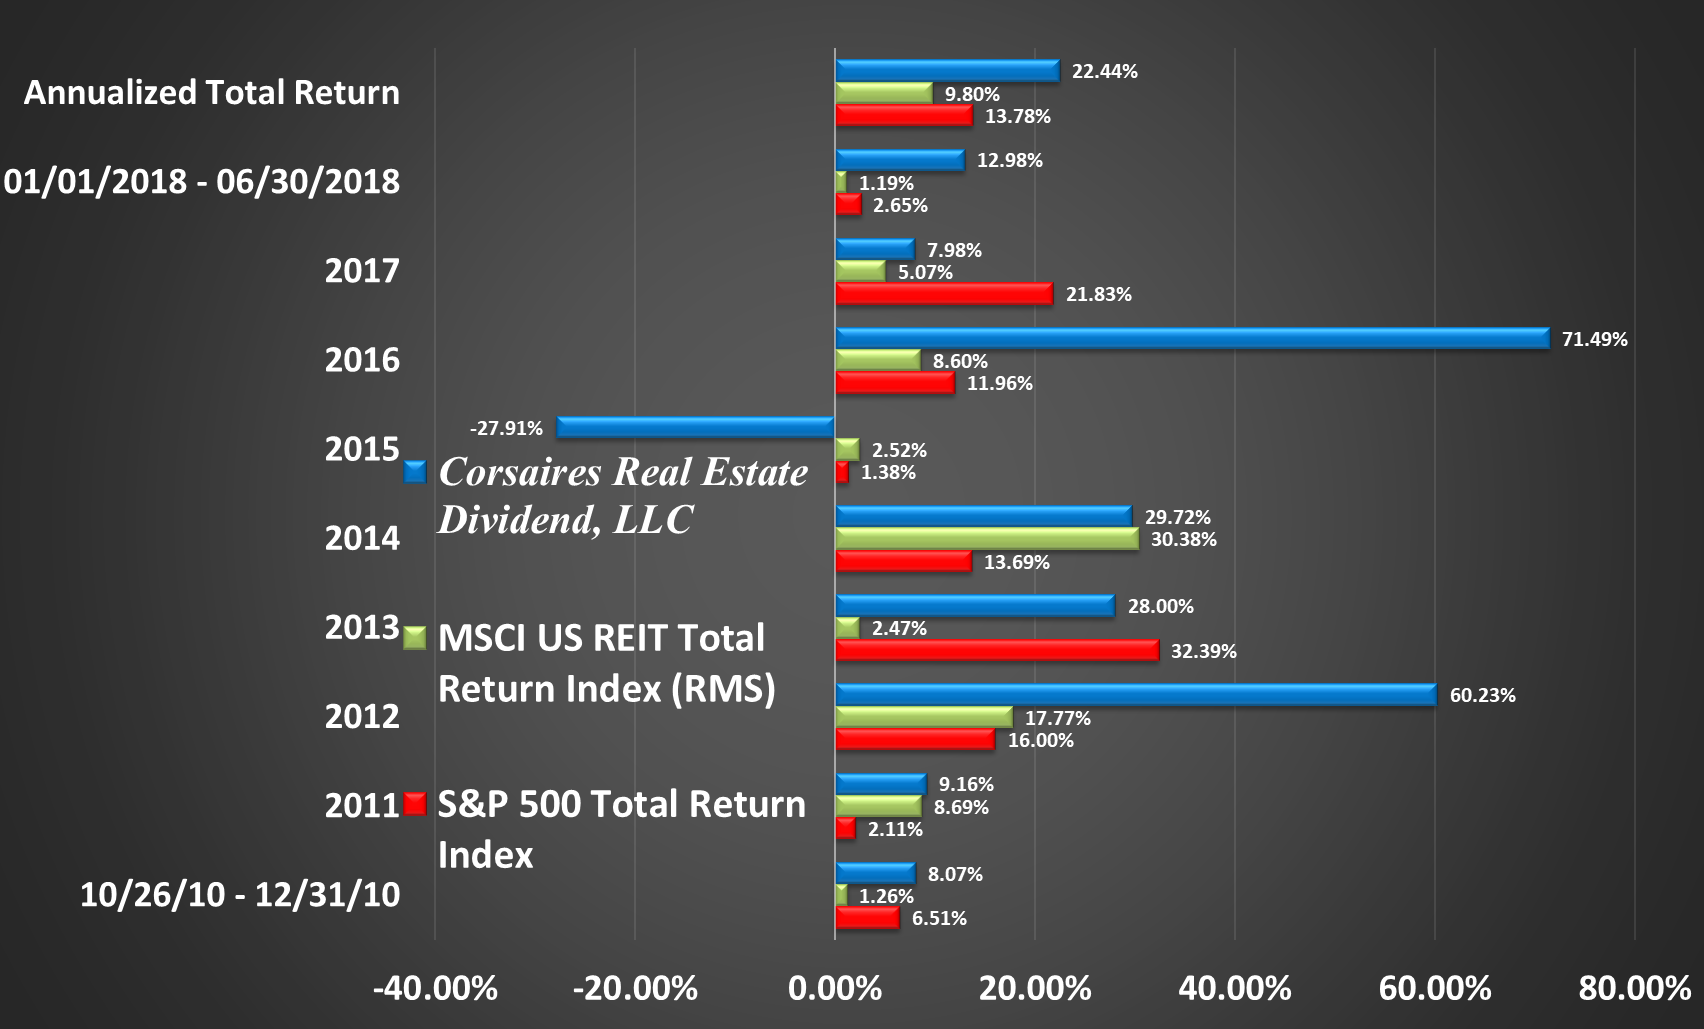 CRED Rate of Return Graphic Through Q2 2018 Return by Year